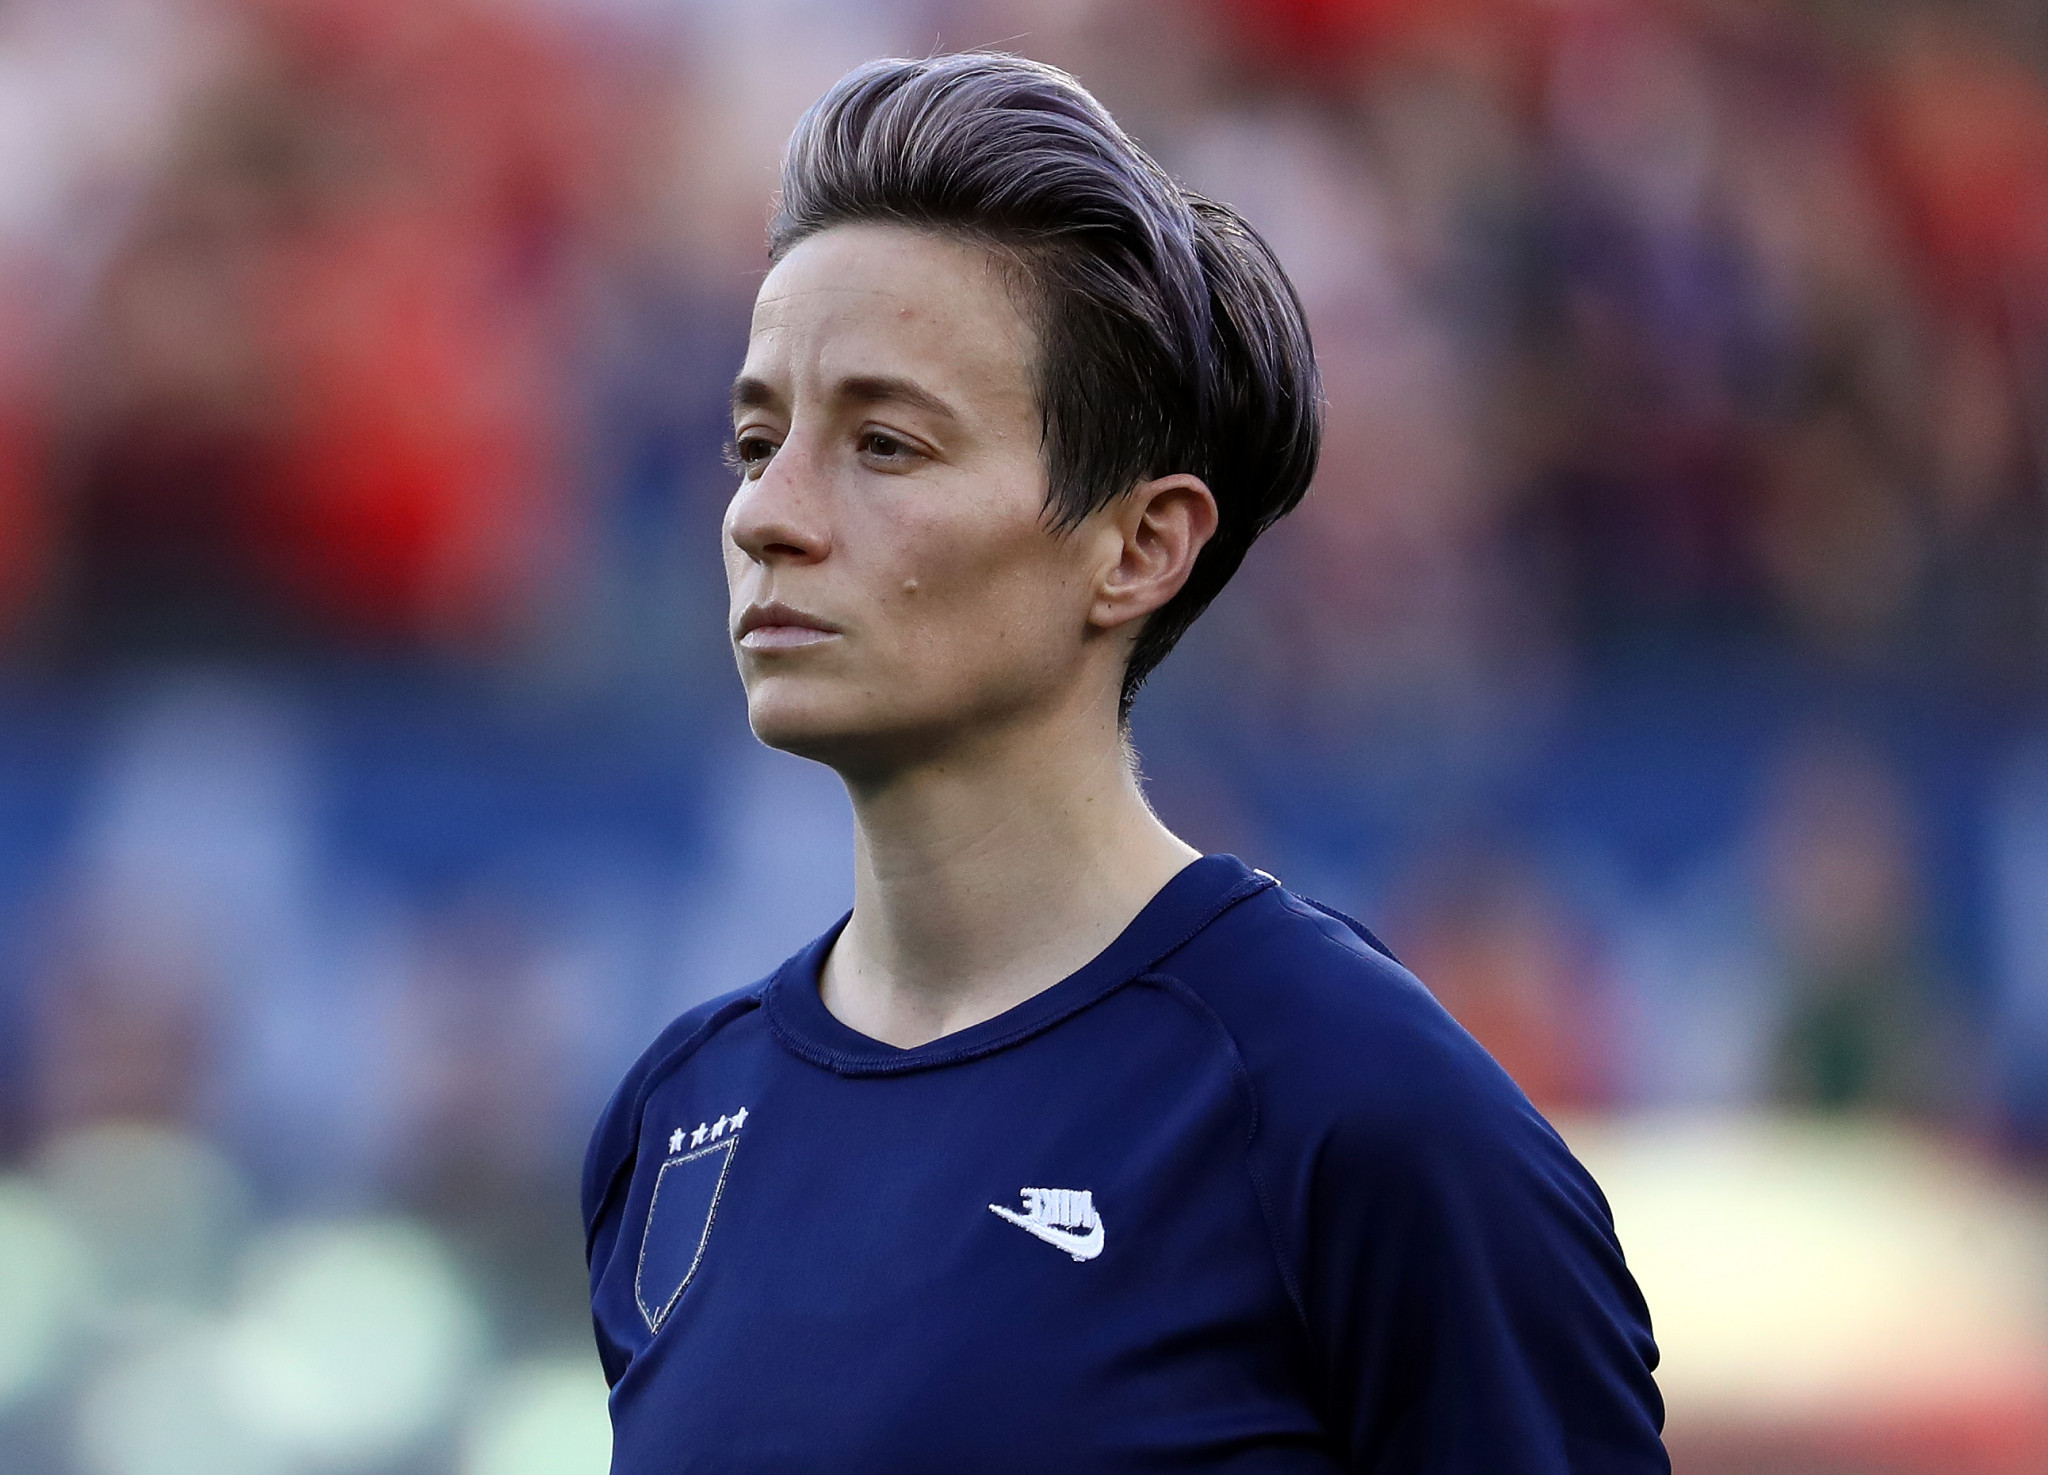 Megan Rapinoe is among the signatories of a letter calling for events to be removed from Idaho ©Getty Images